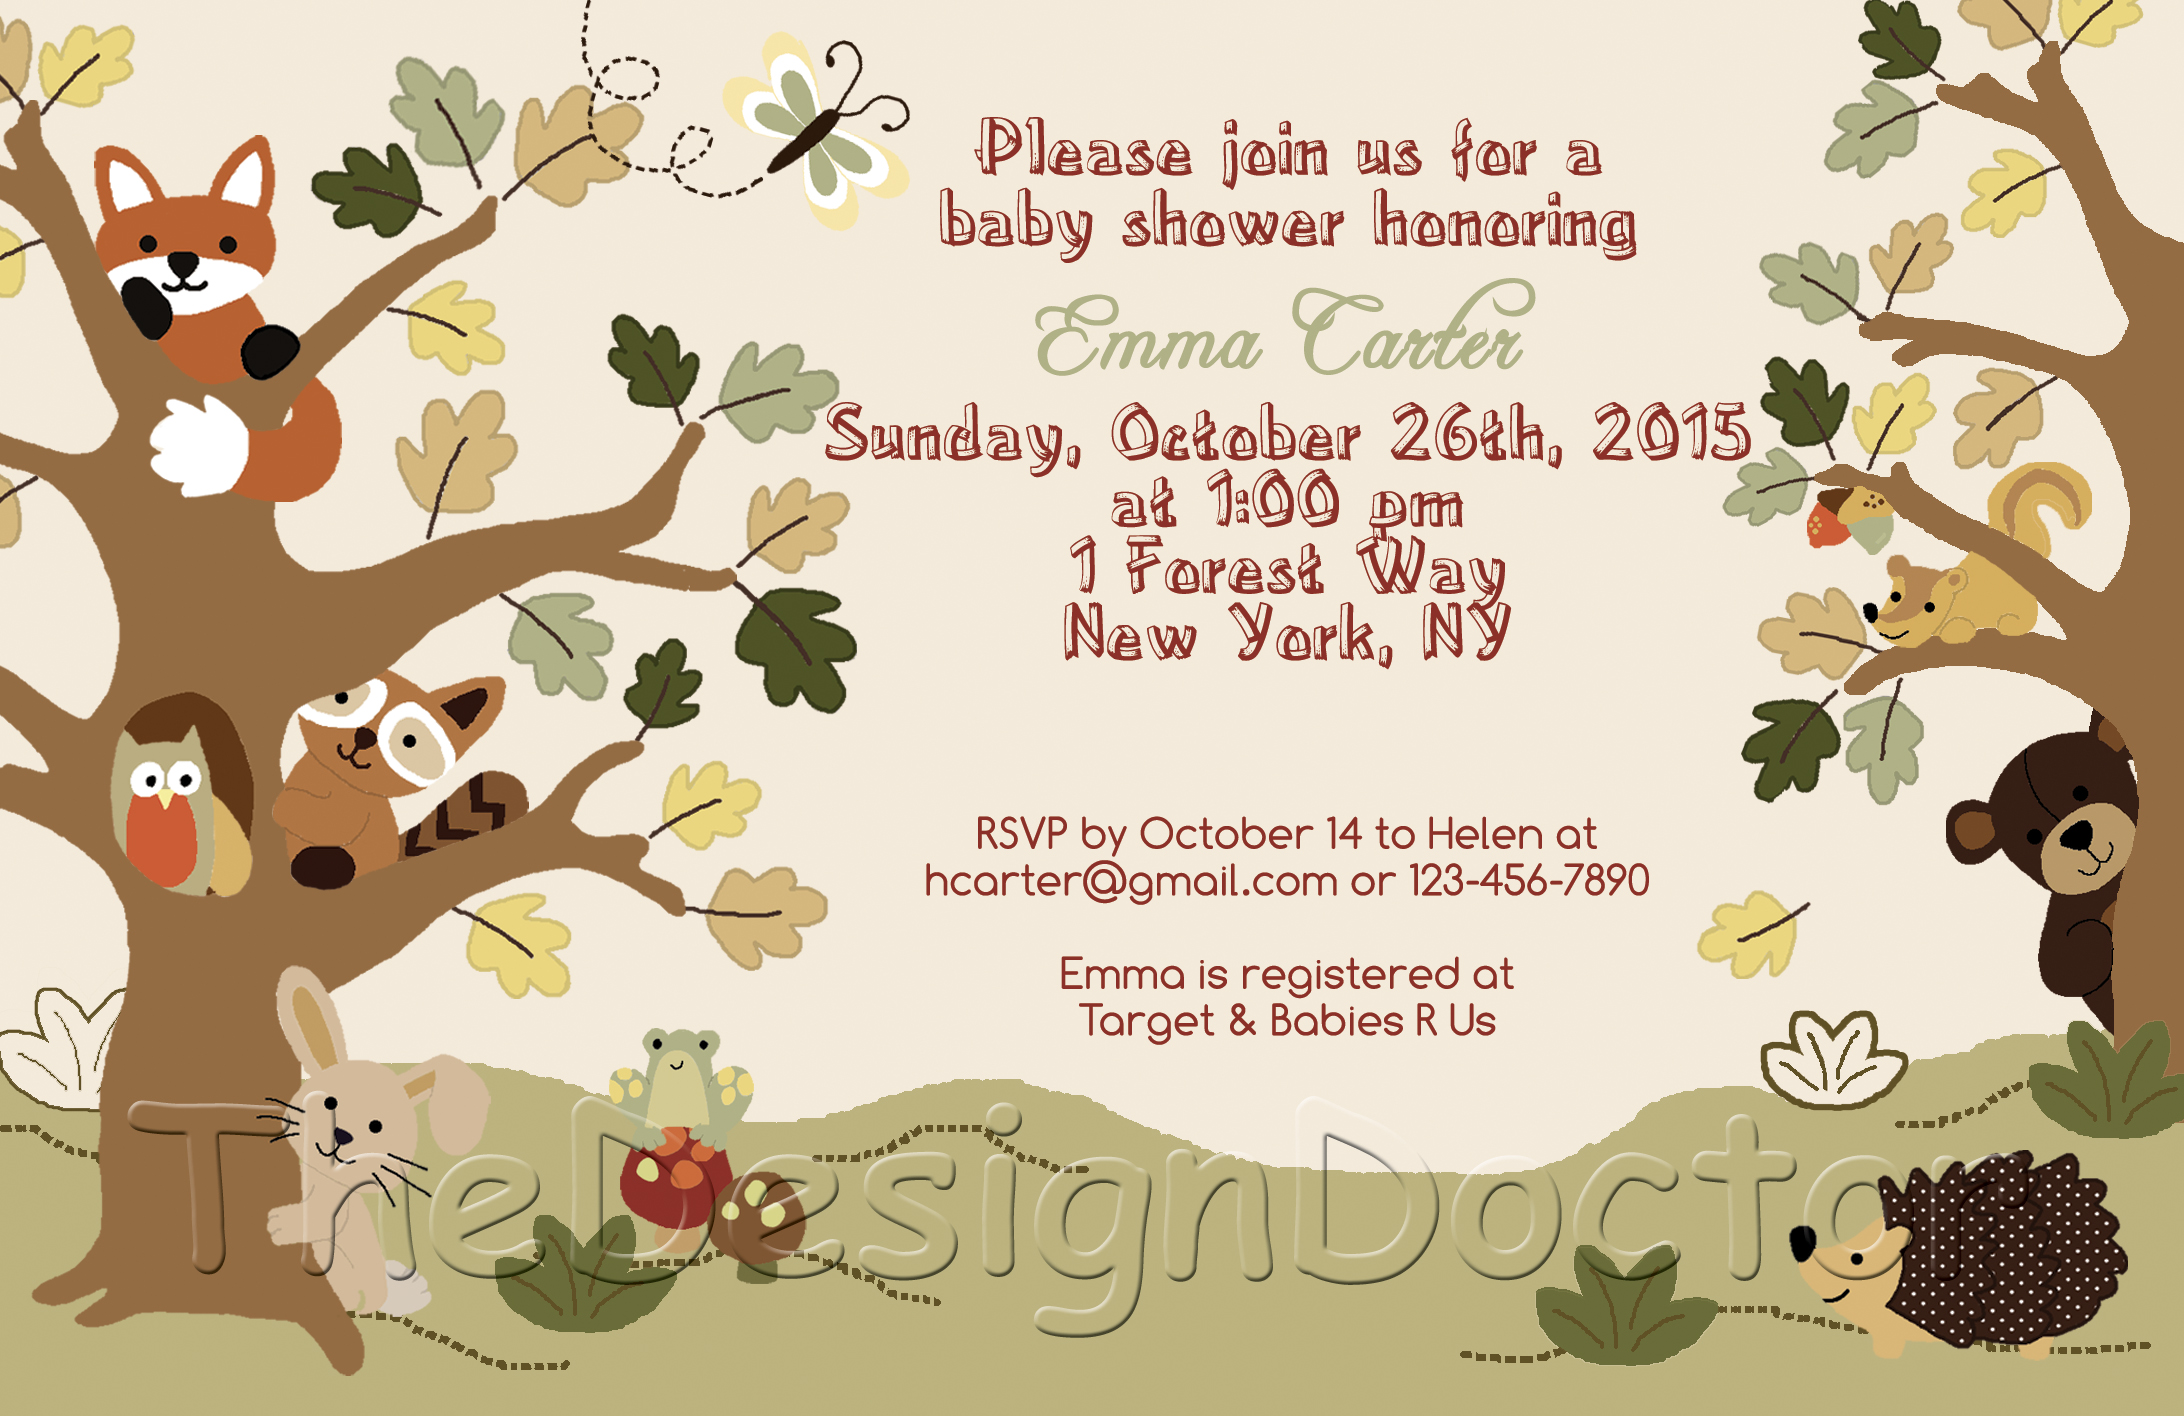 Woodland Animal Echo Forest Friends Theme Baby Shower Invitation And Thank You Card Printable